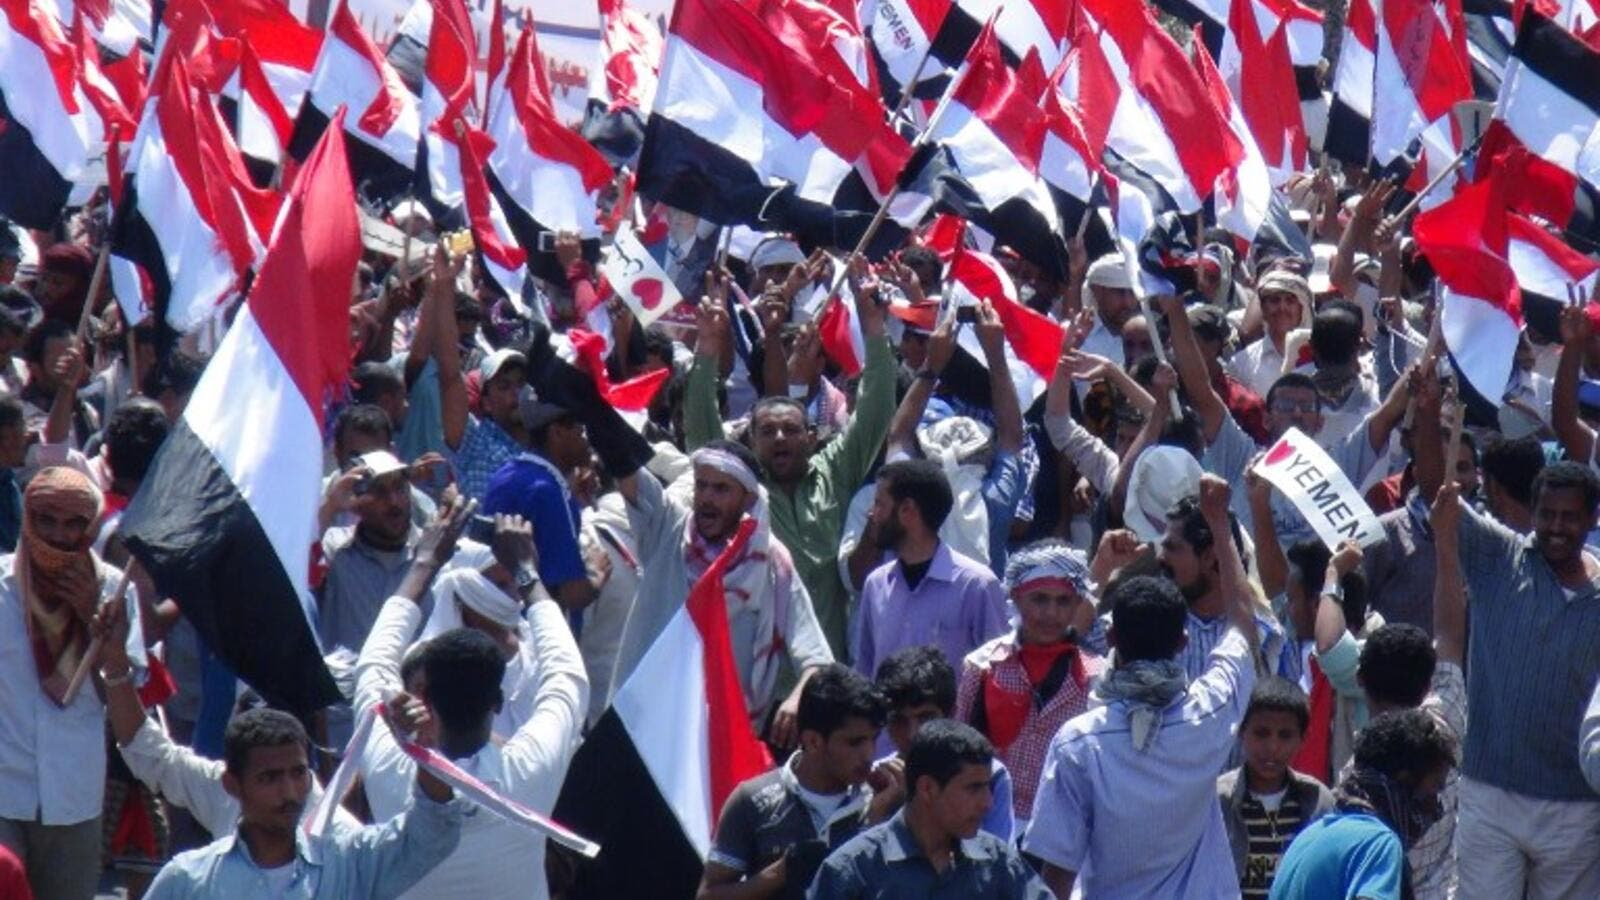 Yemeni protesters call for southern independence during a demonstration on the first anniversary of the ouster of autocratic leader Ali Abdullah Saleh in Aden. (AFP PHOTO/STR)